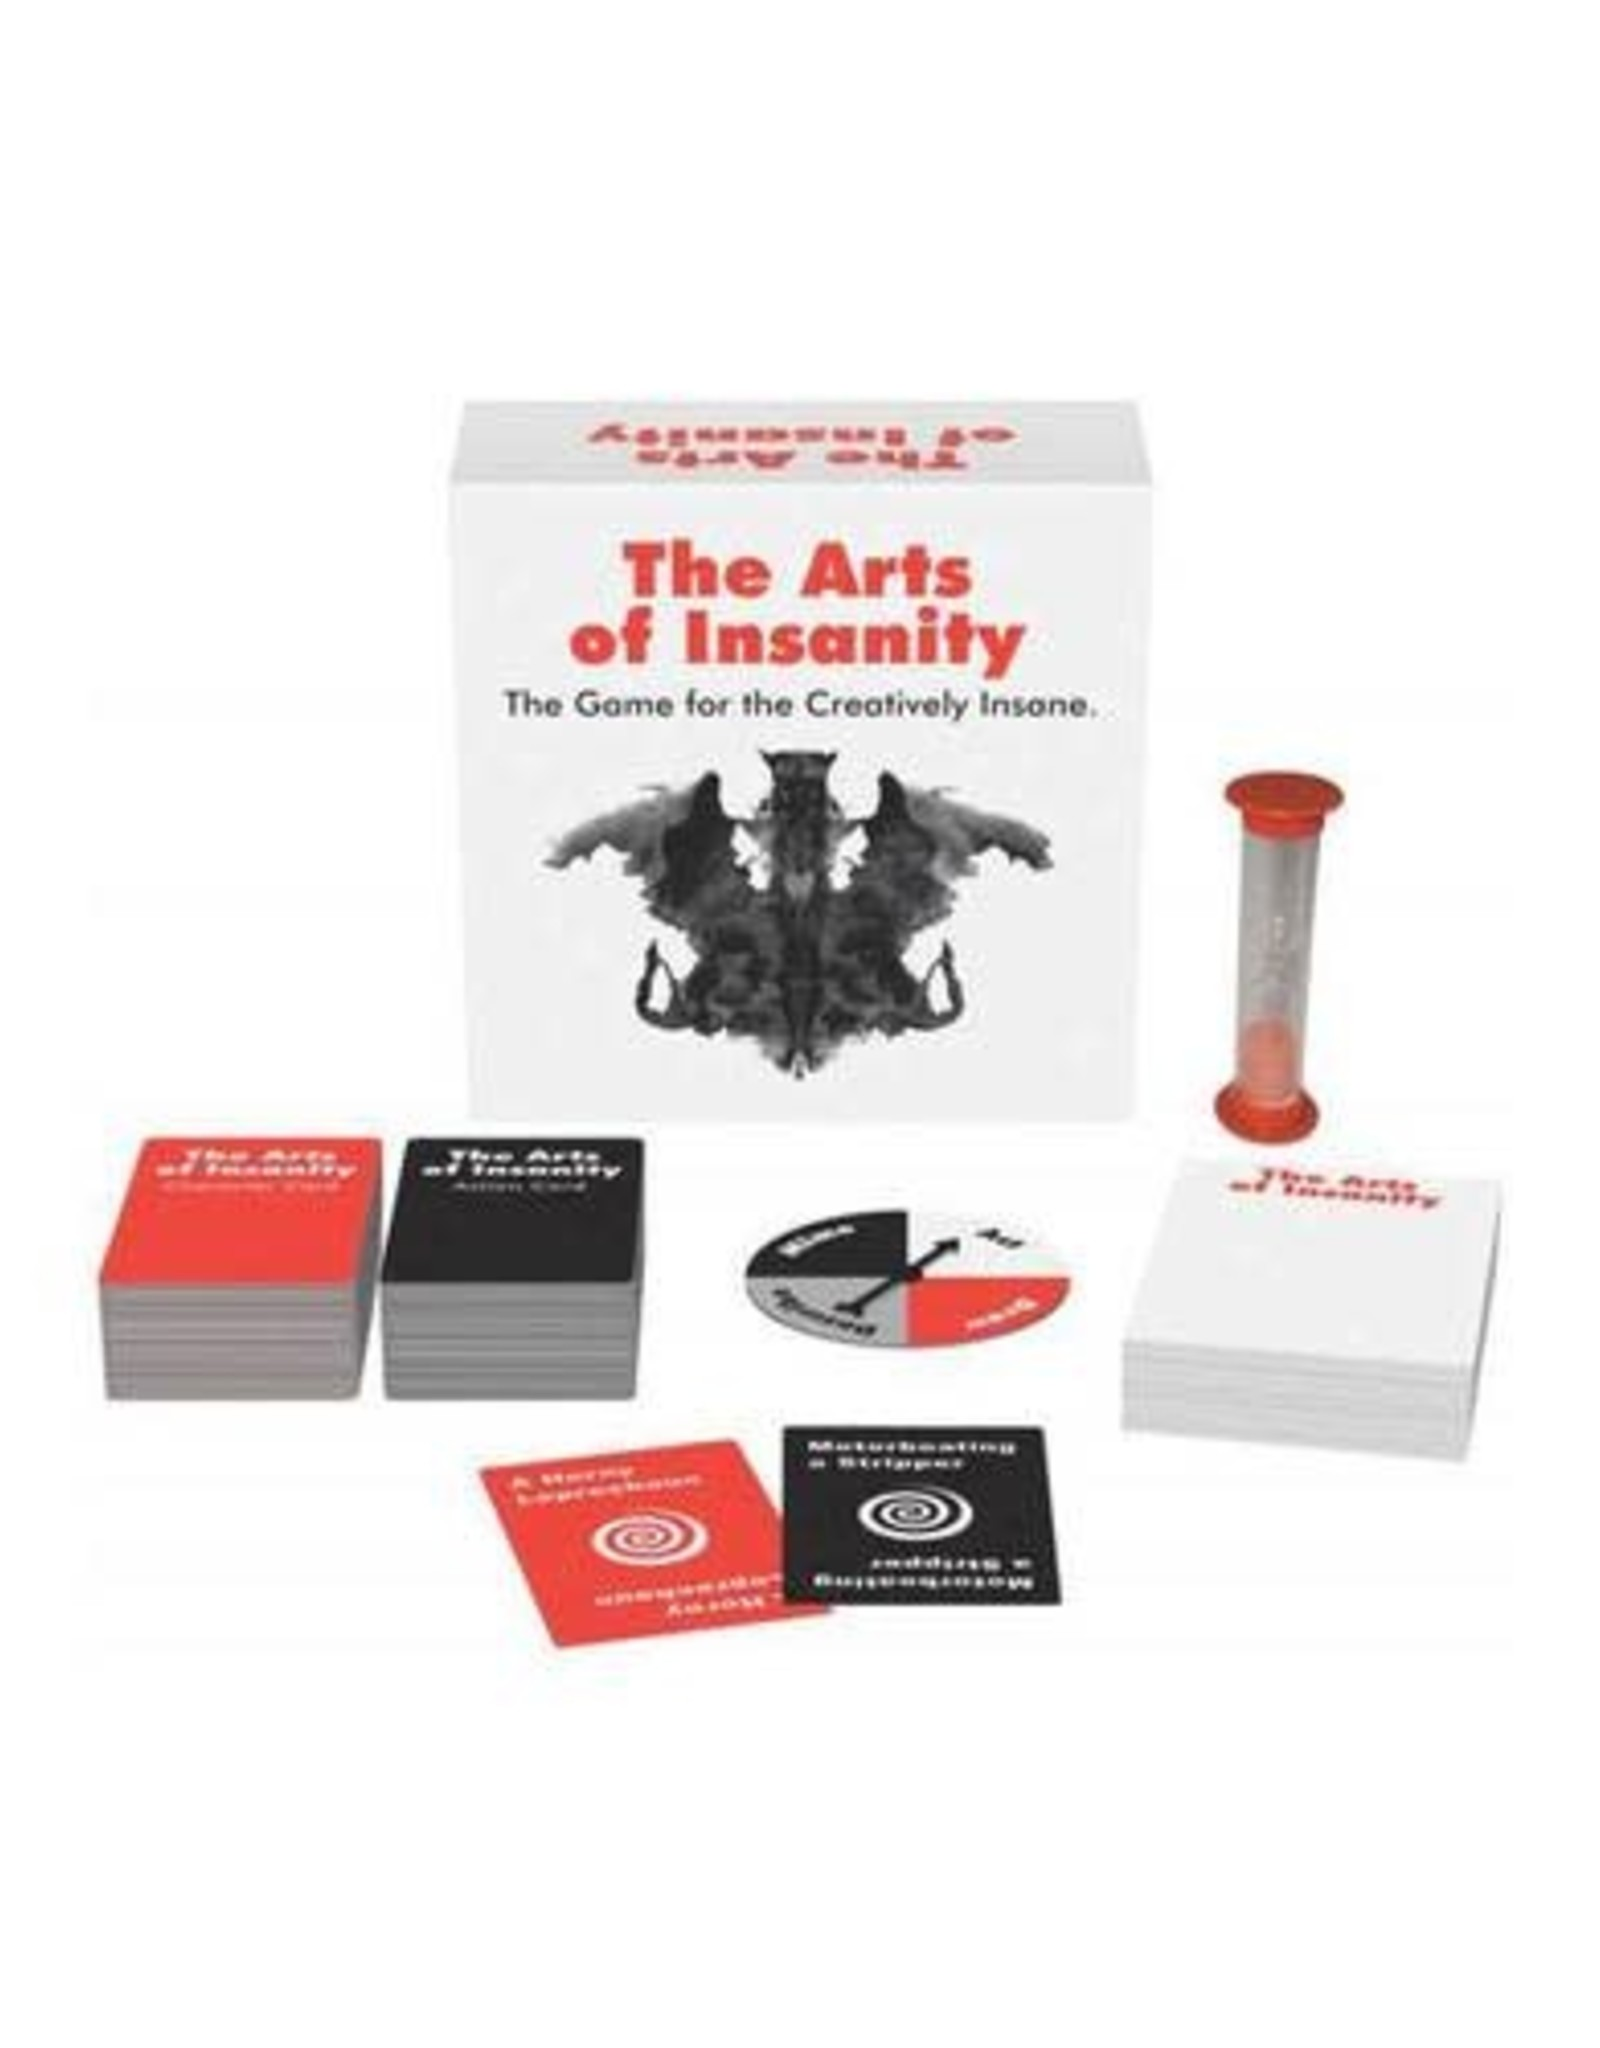 Arts of Insanity: The Game for the Creatively Insane